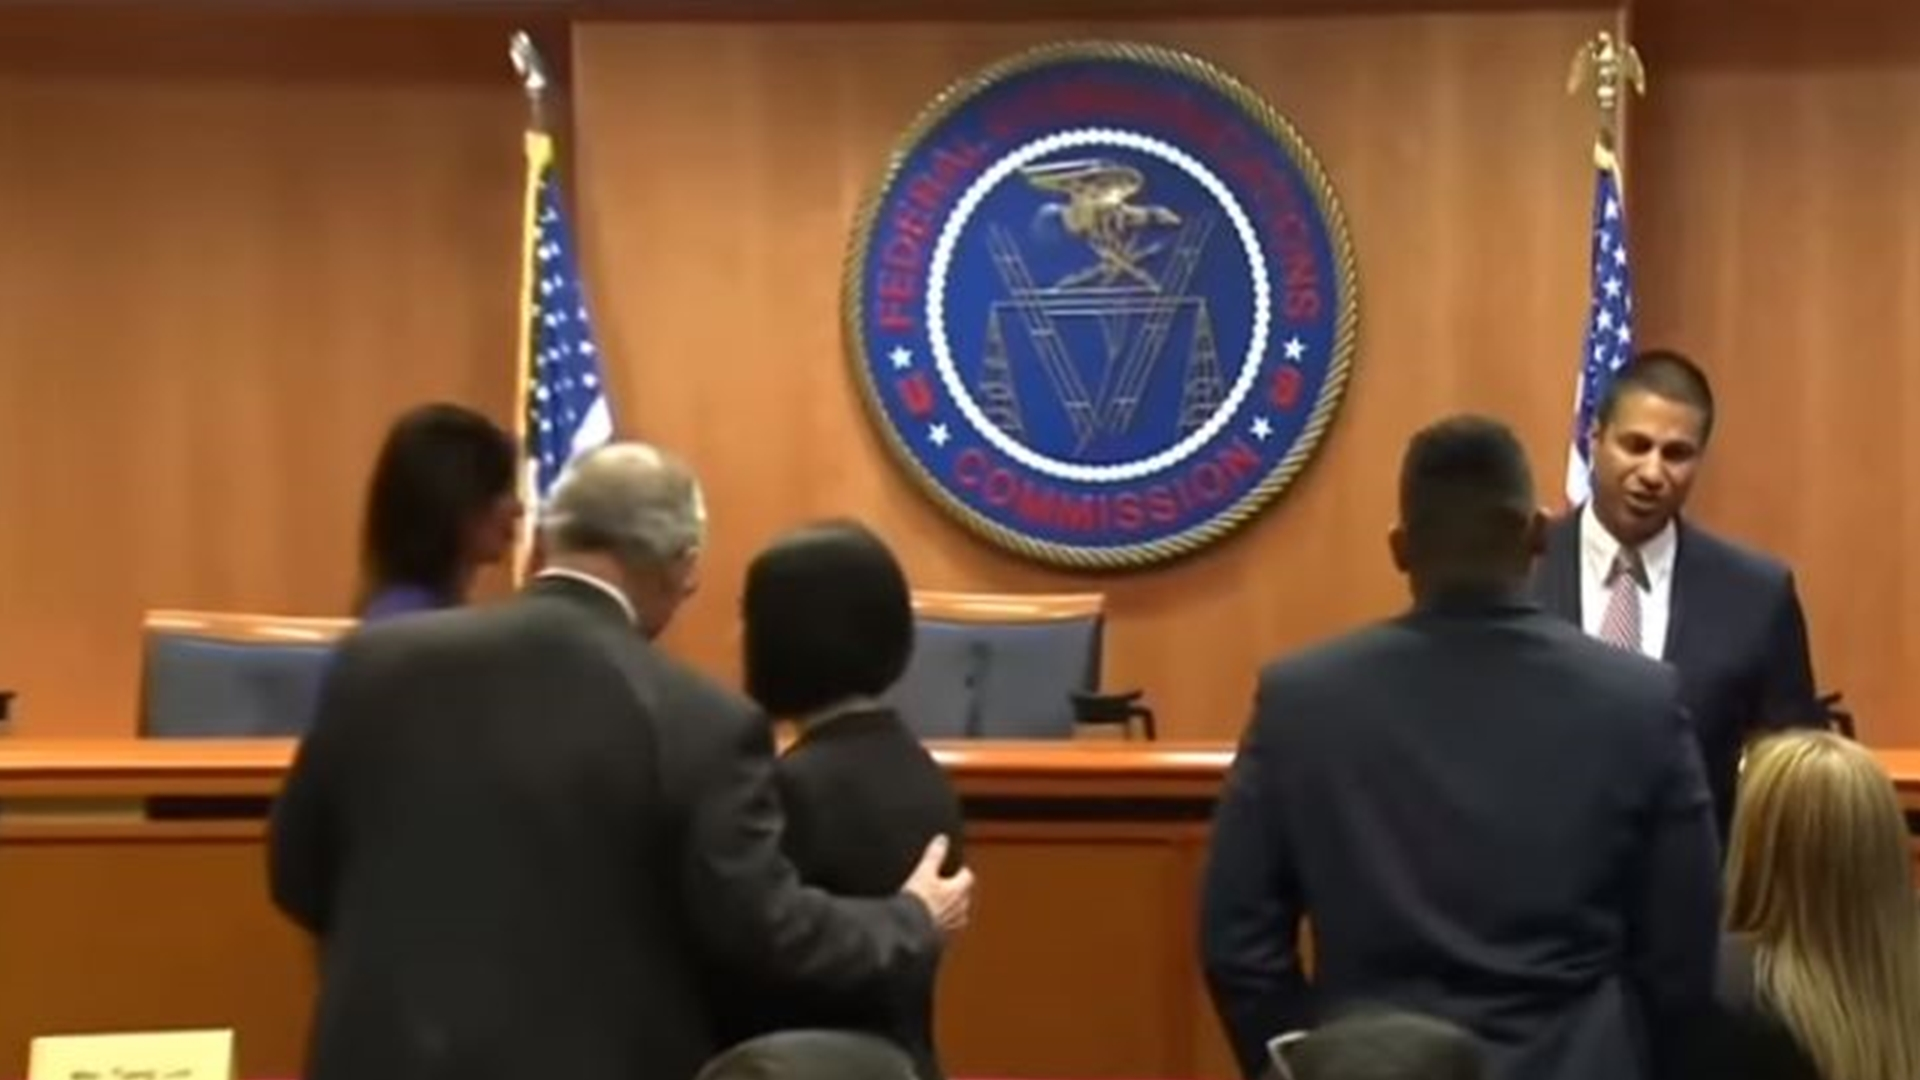 The Federal Register published the FCC order rolling back Net Neutrality.